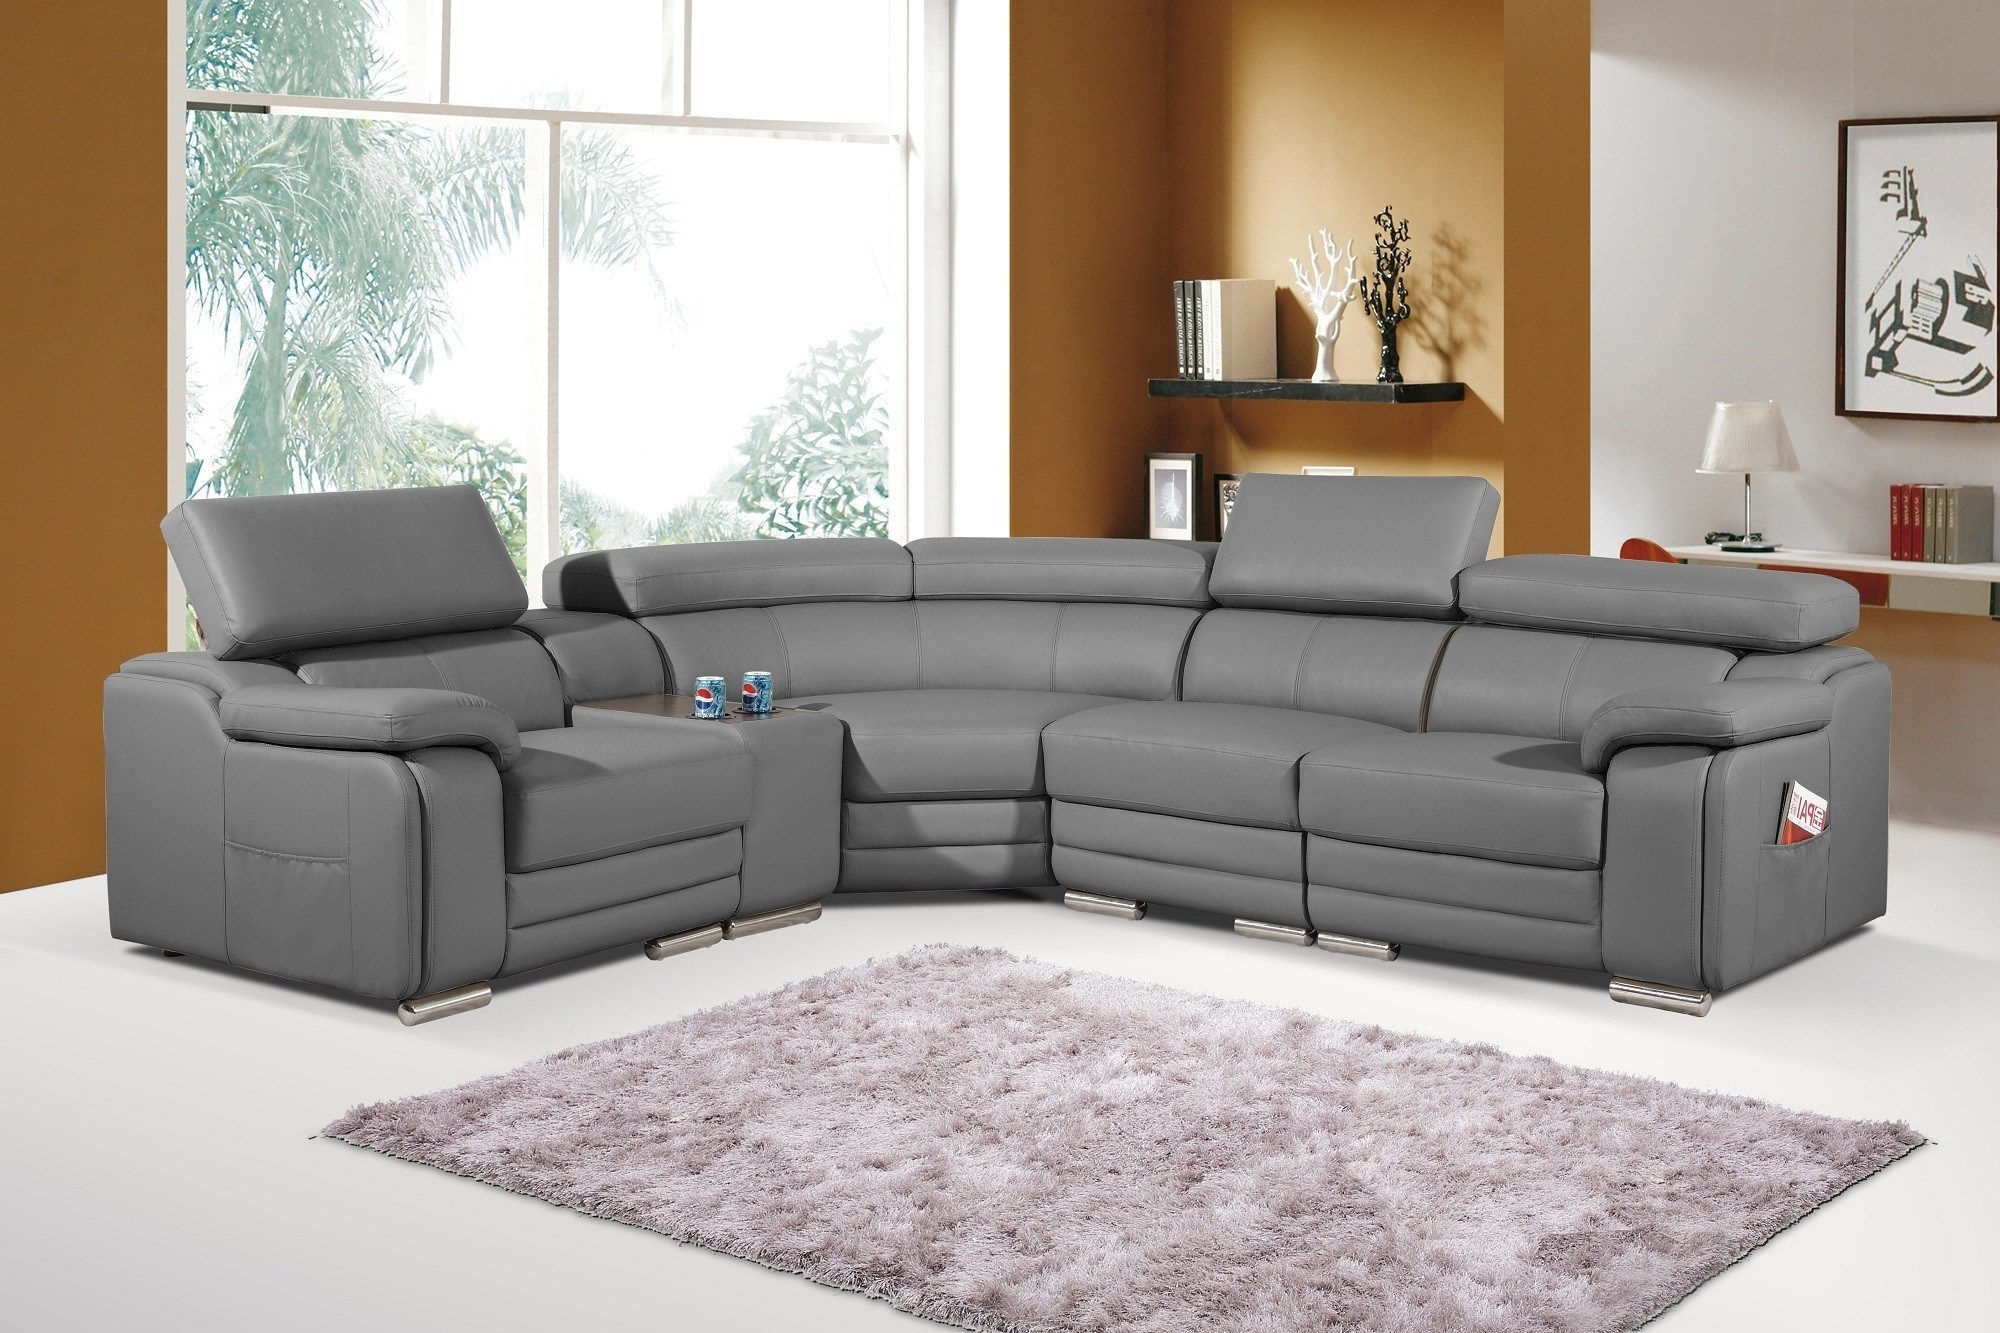 Astounding Target Sectional Sofa 74 In Sectional Sofas At Costco Pertaining To Target Sectional Sofas (Image 2 of 10)